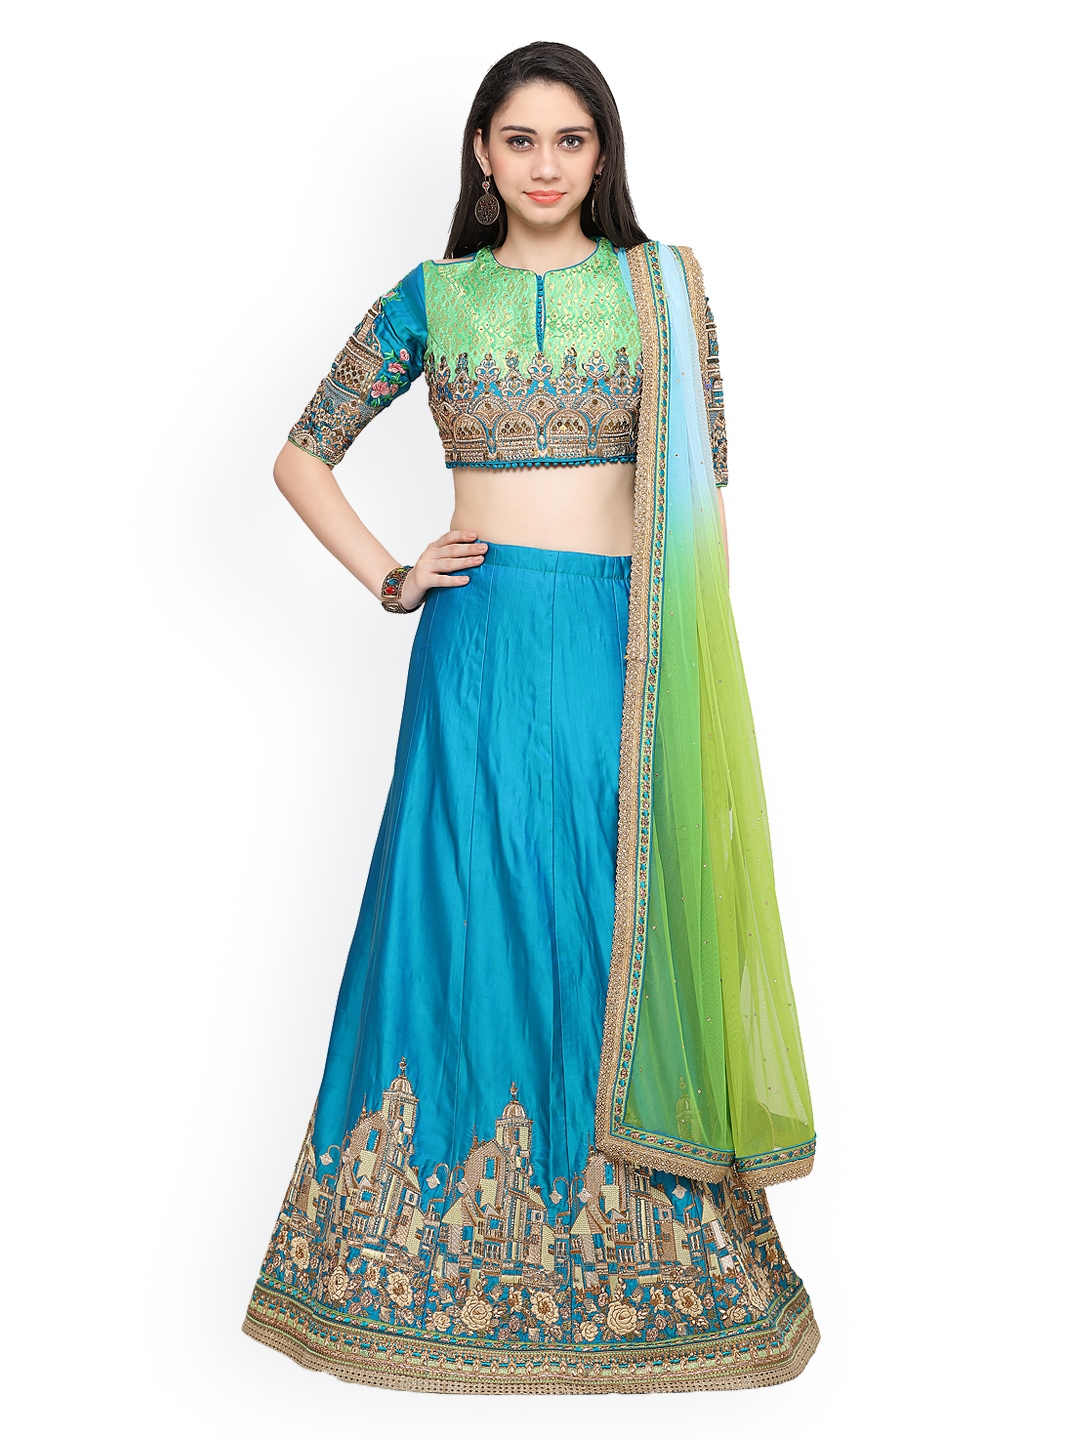 RIYA Blue & Green Embroidered Semi-Stictched Lehenga Choli with Dupatta image